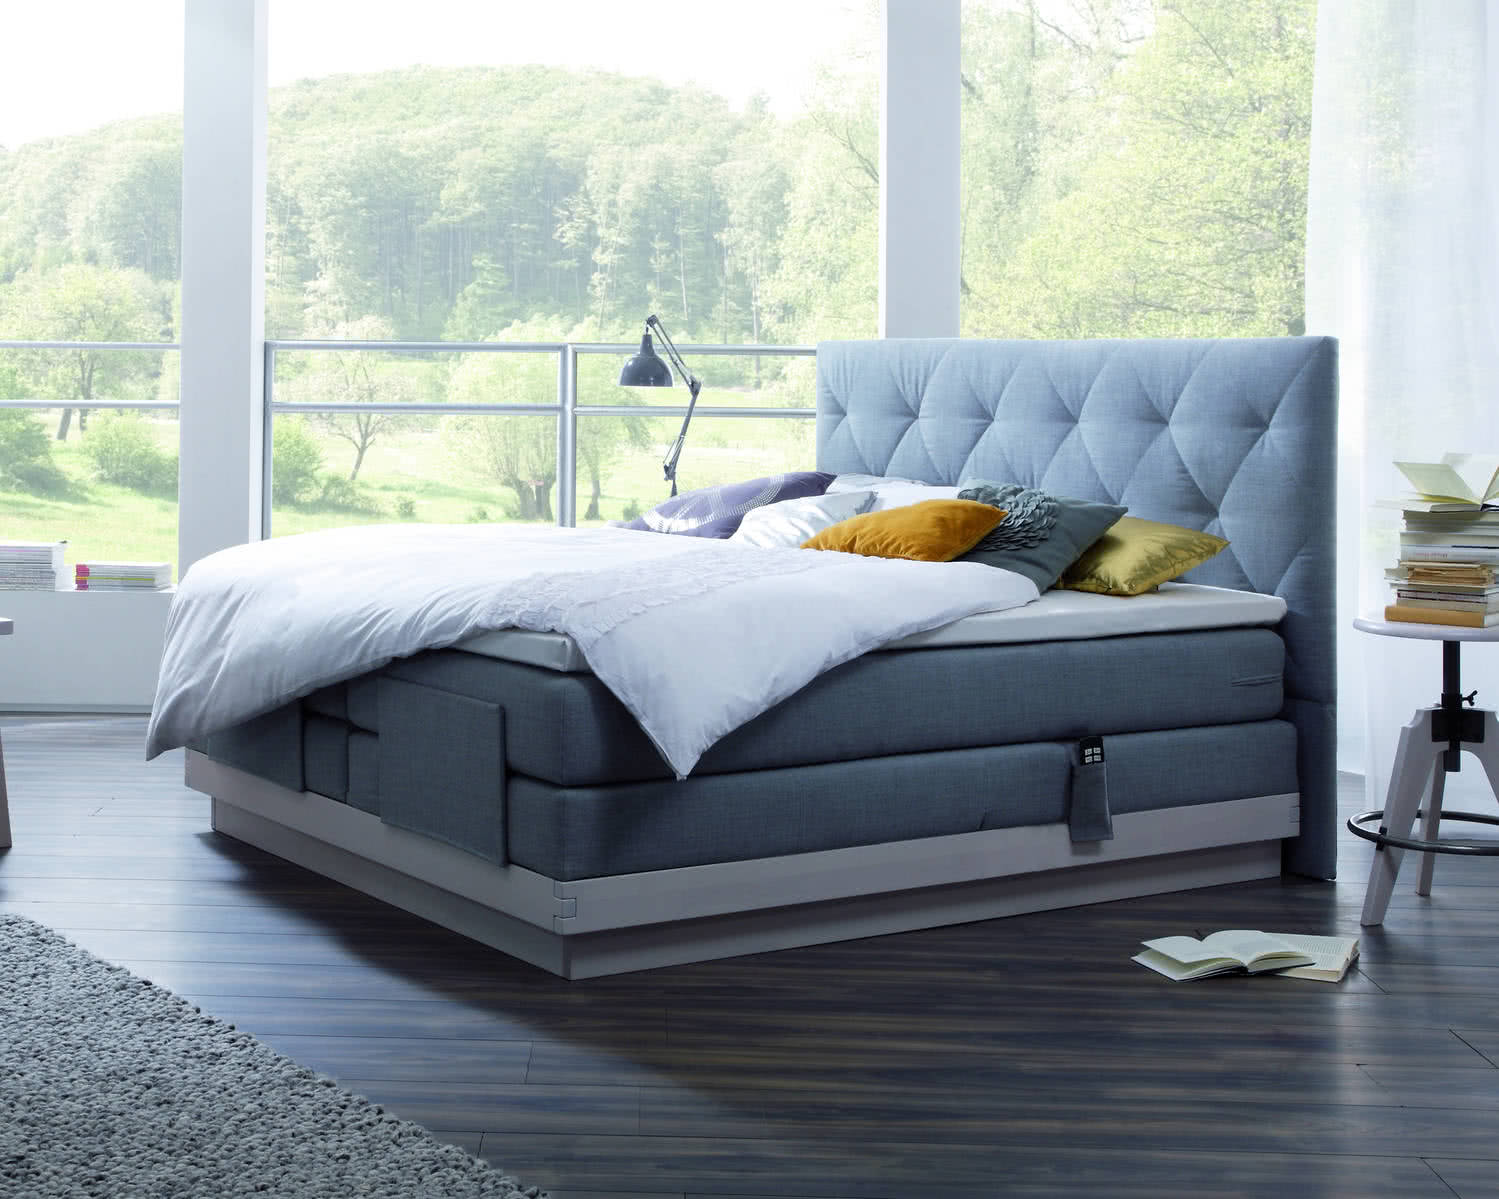 hasena boxspringbett massiva rocc paris xl boxspringbetten bremen. Black Bedroom Furniture Sets. Home Design Ideas